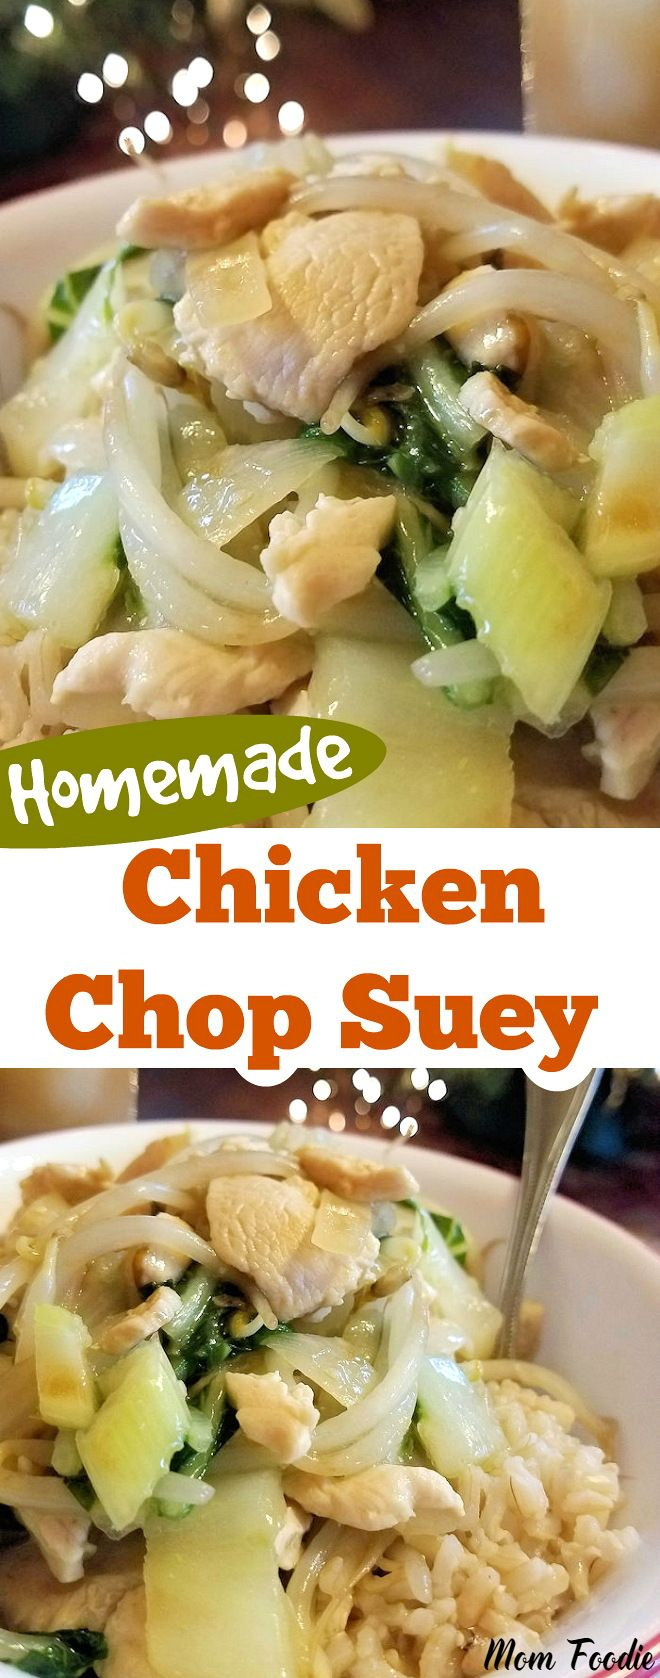 Homemade Chicken Chop Suey and easy Chinese dinner theme #Chopseuy  #Asianrecipes #weeknightdinner